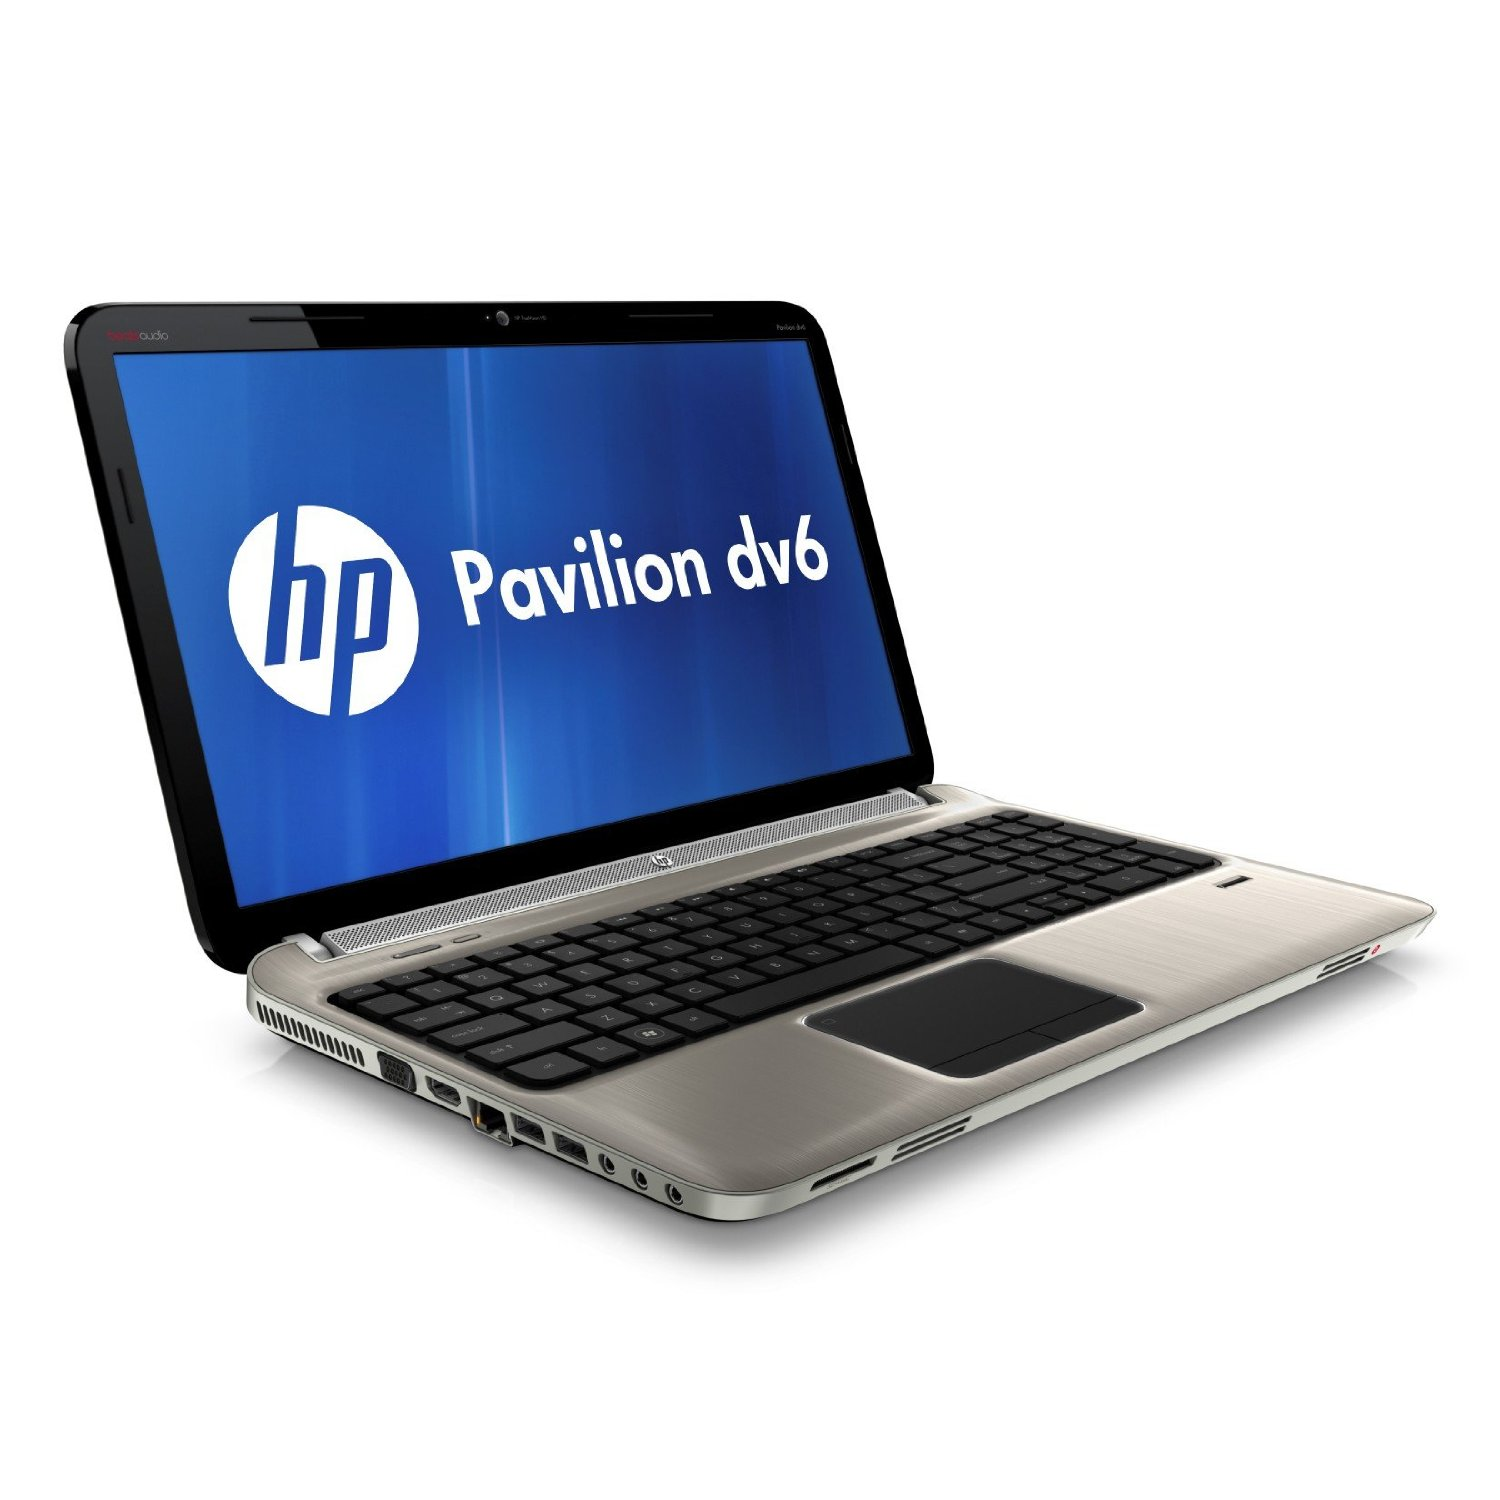 HP Pavilion dv6 Notebook Windows 10 Graphic driver - Microsoft Community